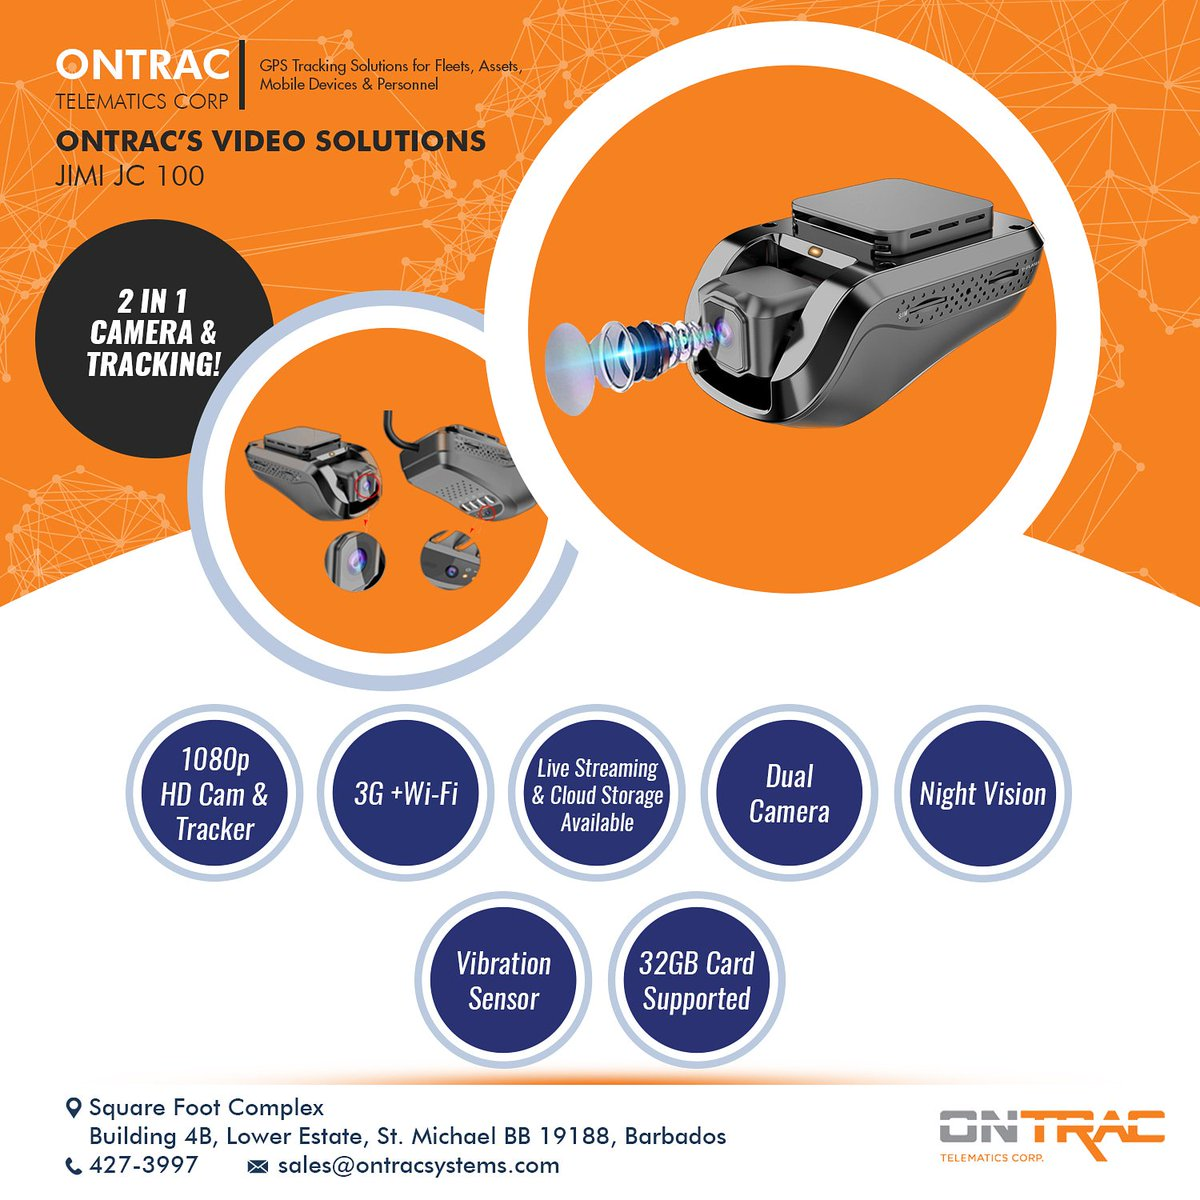 Ontrac Telematics Corp  (@OntracSystems) | Twitter